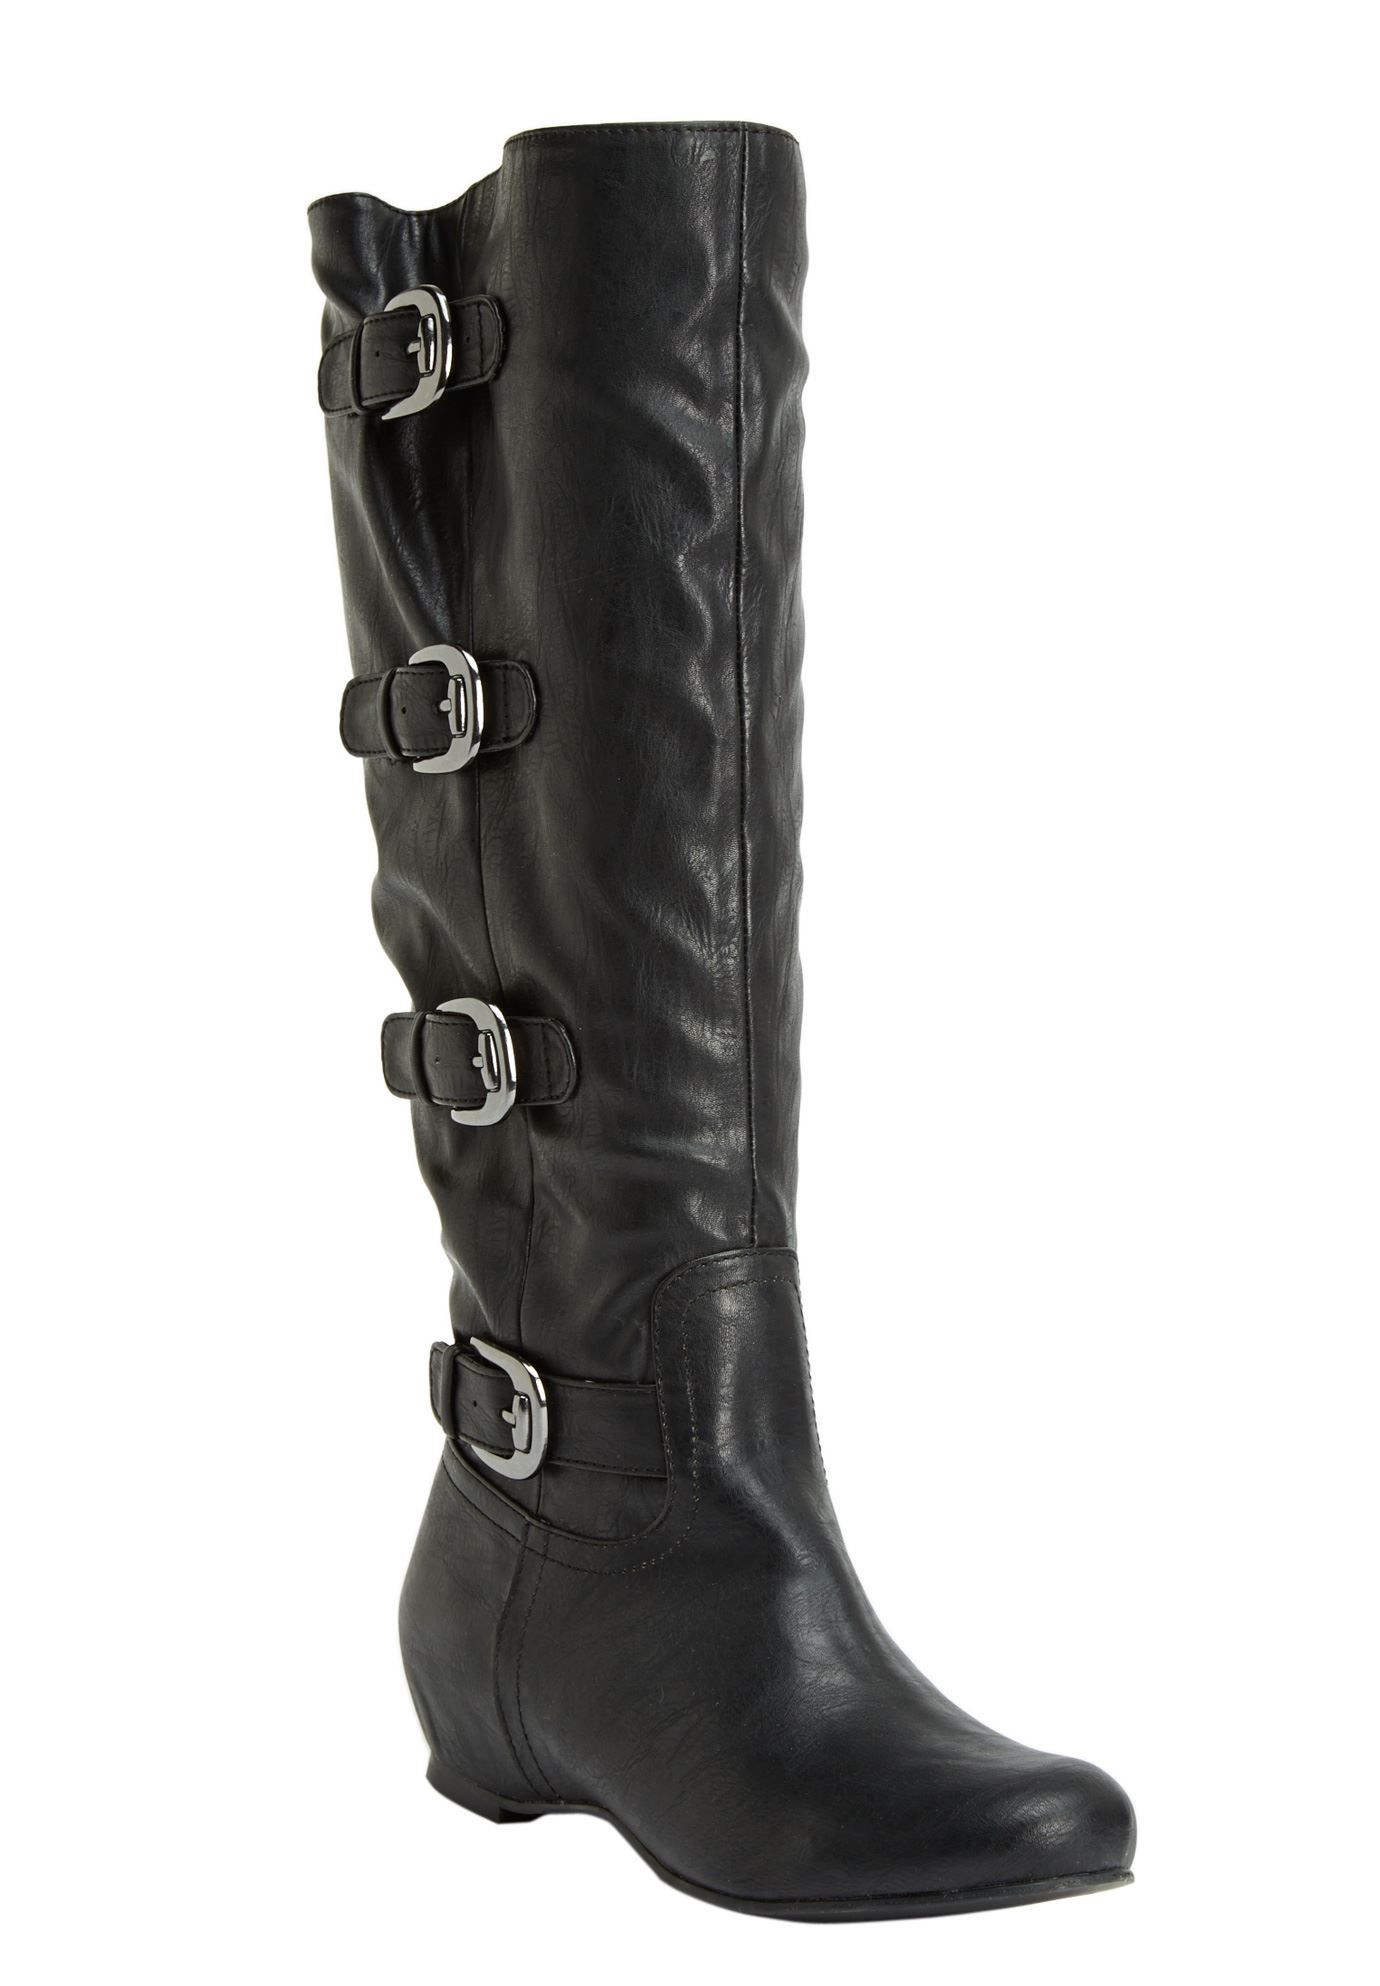 7d7e7b9eeb863 Frankie Wide Calf Boot by Comfortview® | Plus Size Shoe & Boot Sale |  Jessica London